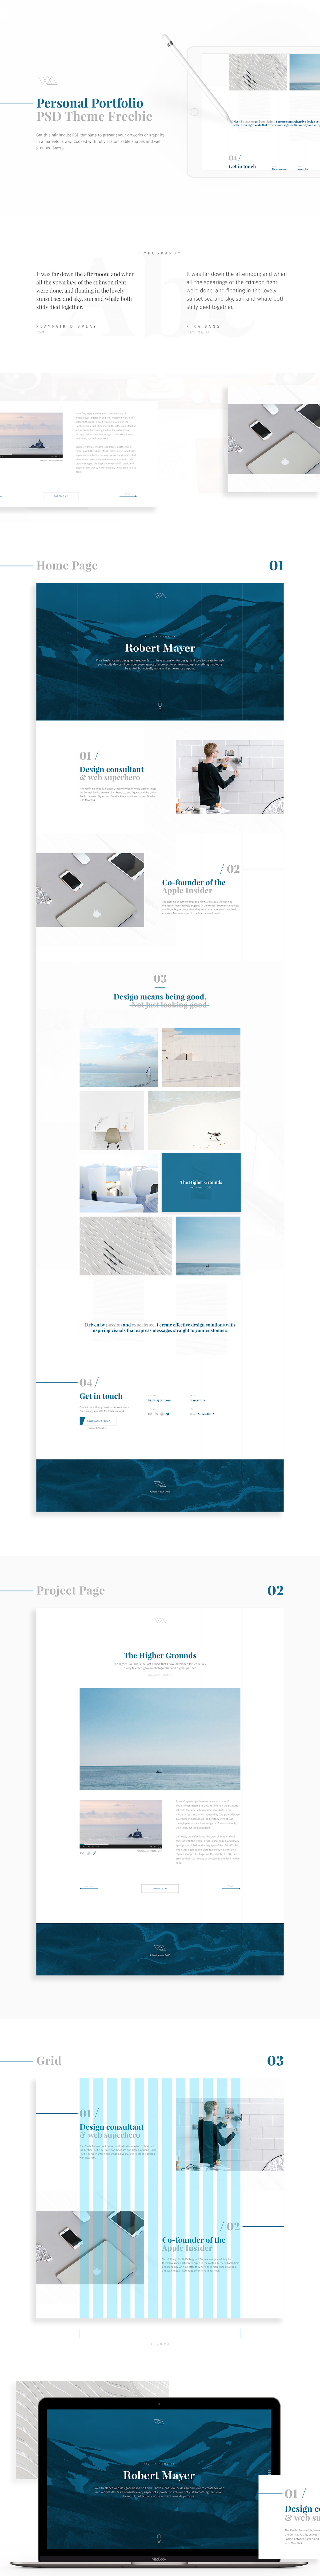 Free Personal Portfolio Theme for Photoshop UI Designers - Clean and Minimal Template